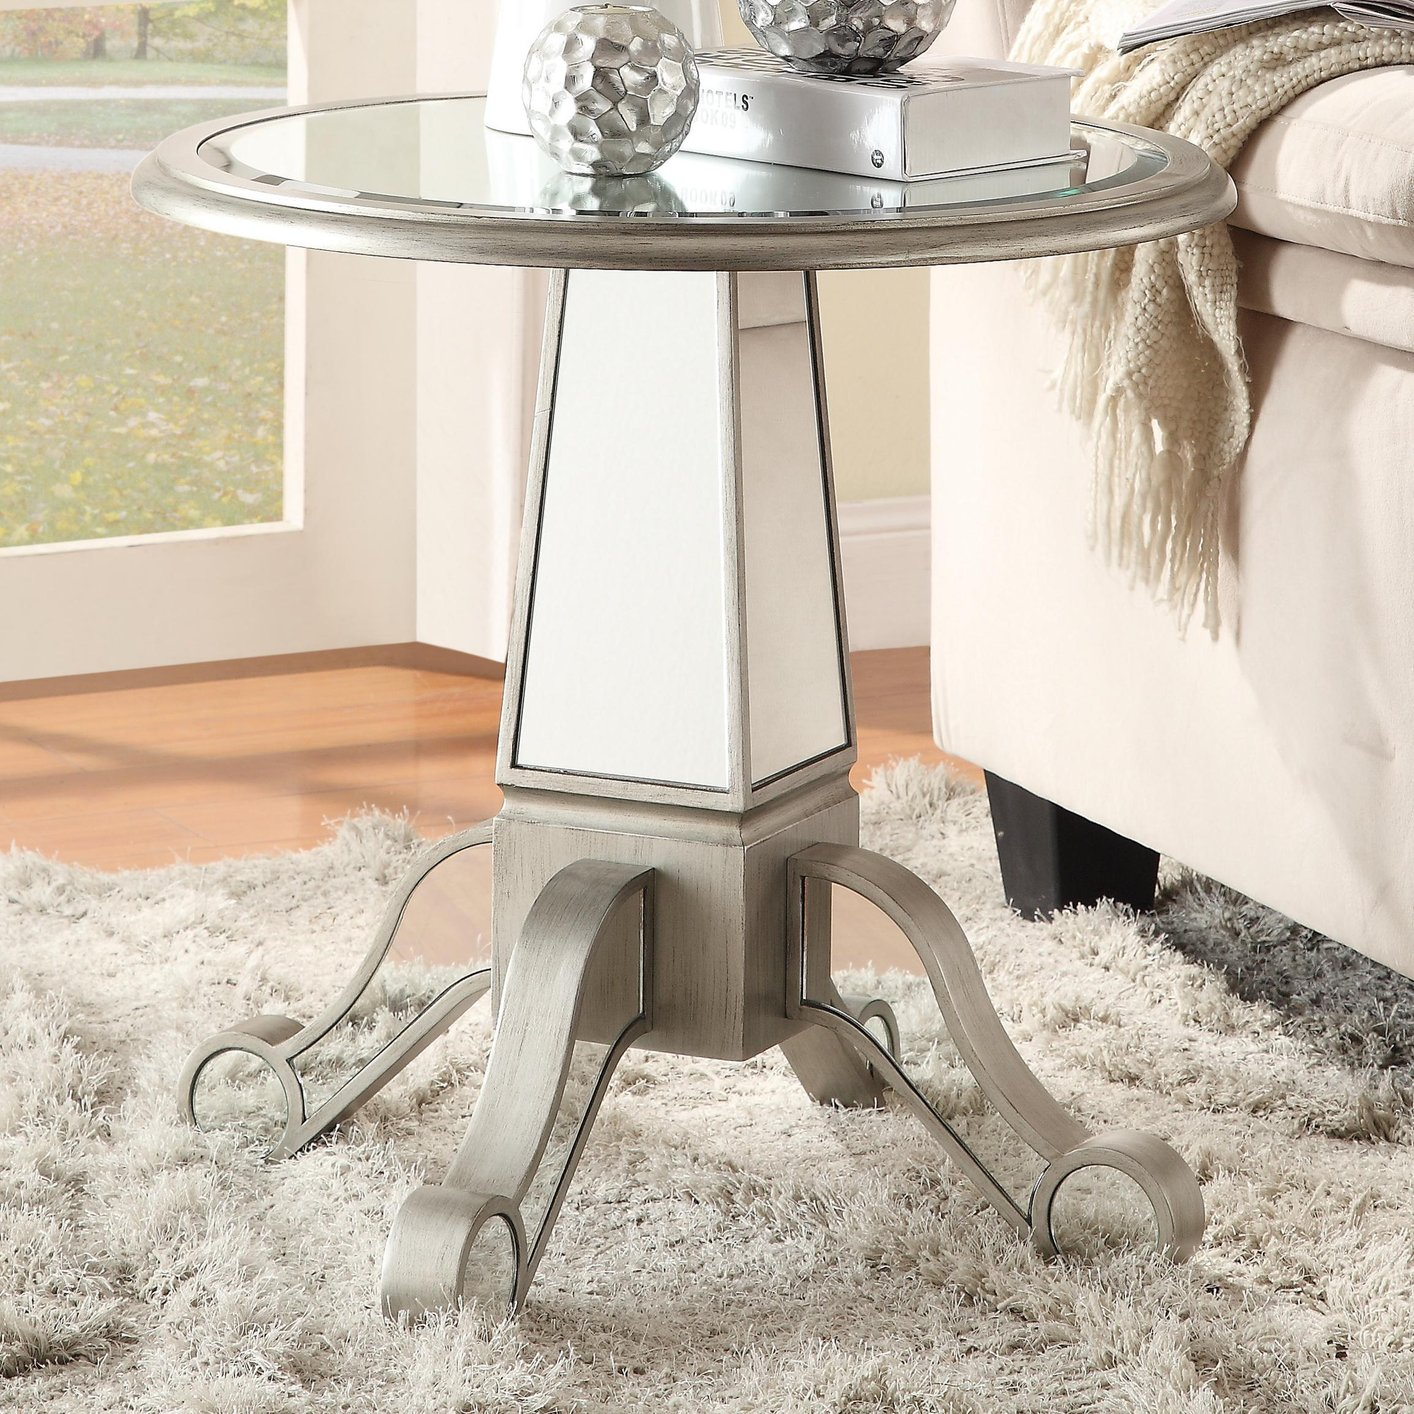 top kit depot designs home farmhouse tablebase table white for piece industrial chrome base engine diy island only lamp ideas kitchen letters rus glass contemporary endgame chess